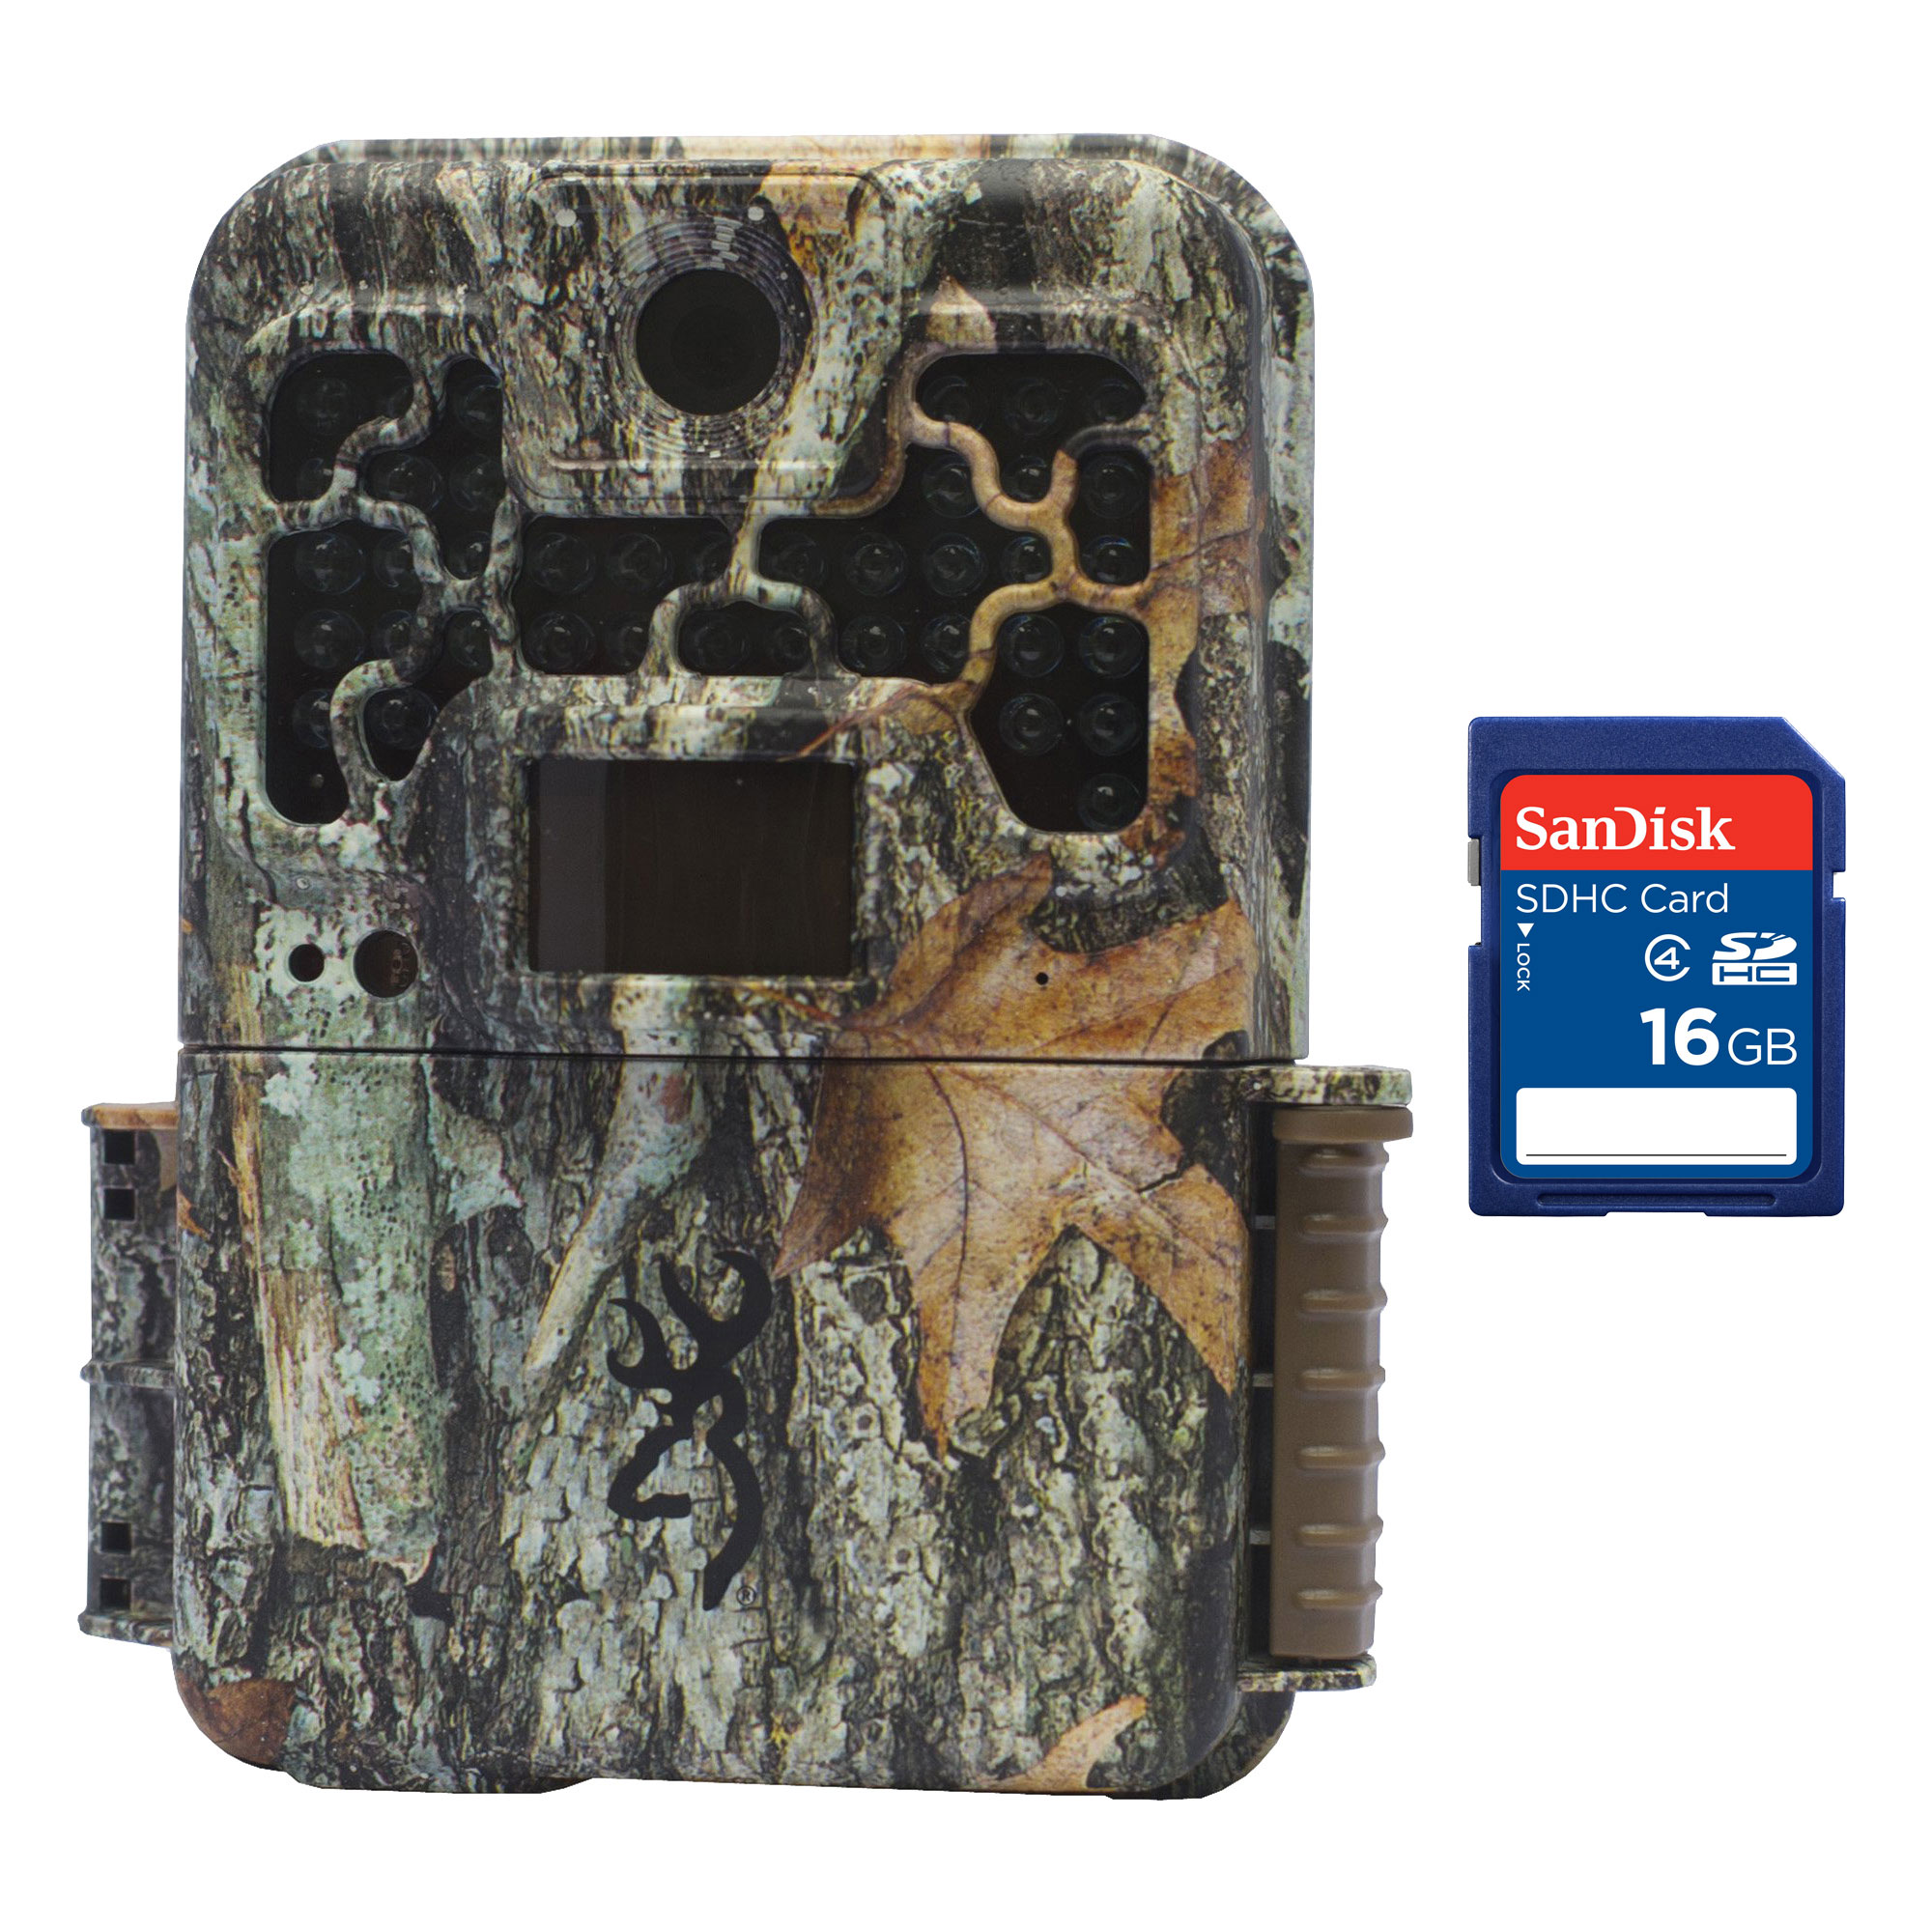 Browning Trail Cameras Recon Force FHD Extreme 20MP Game Camera + 16GB SD Card by Browning Trail Cameras